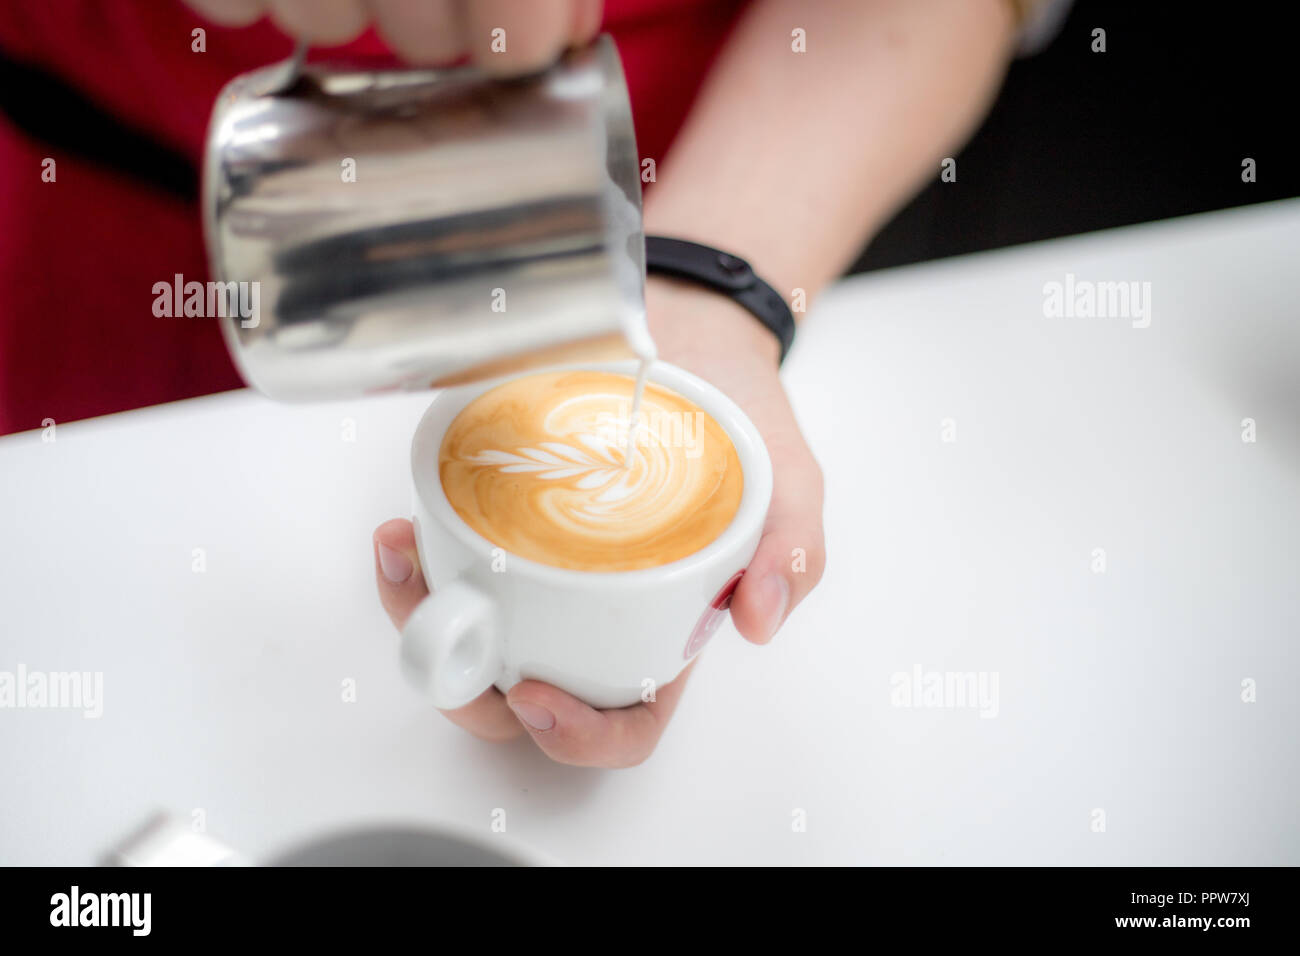 Barista pours a cup of latte coffee and creates a beautiful image - Stock Image